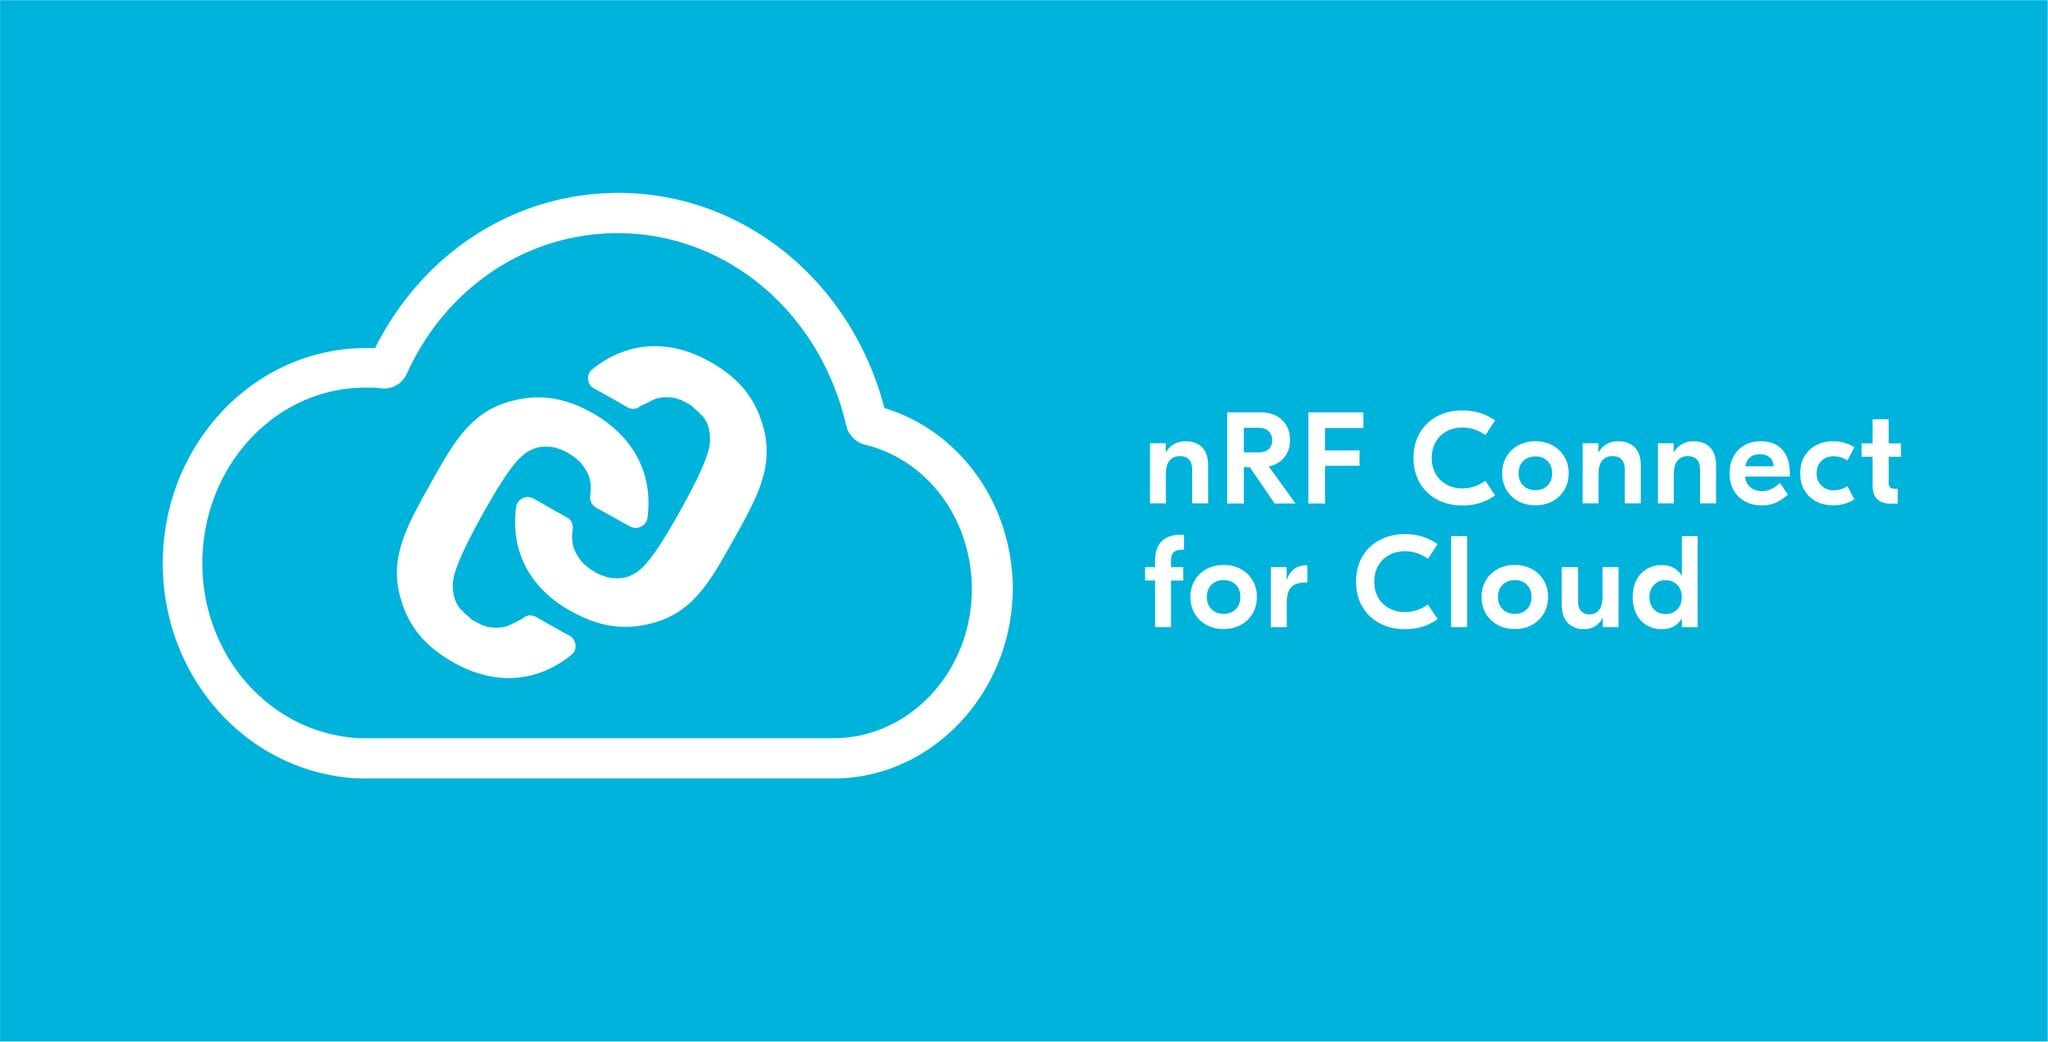 nRF Connect for Cloud Enables Developers to Test Wireless